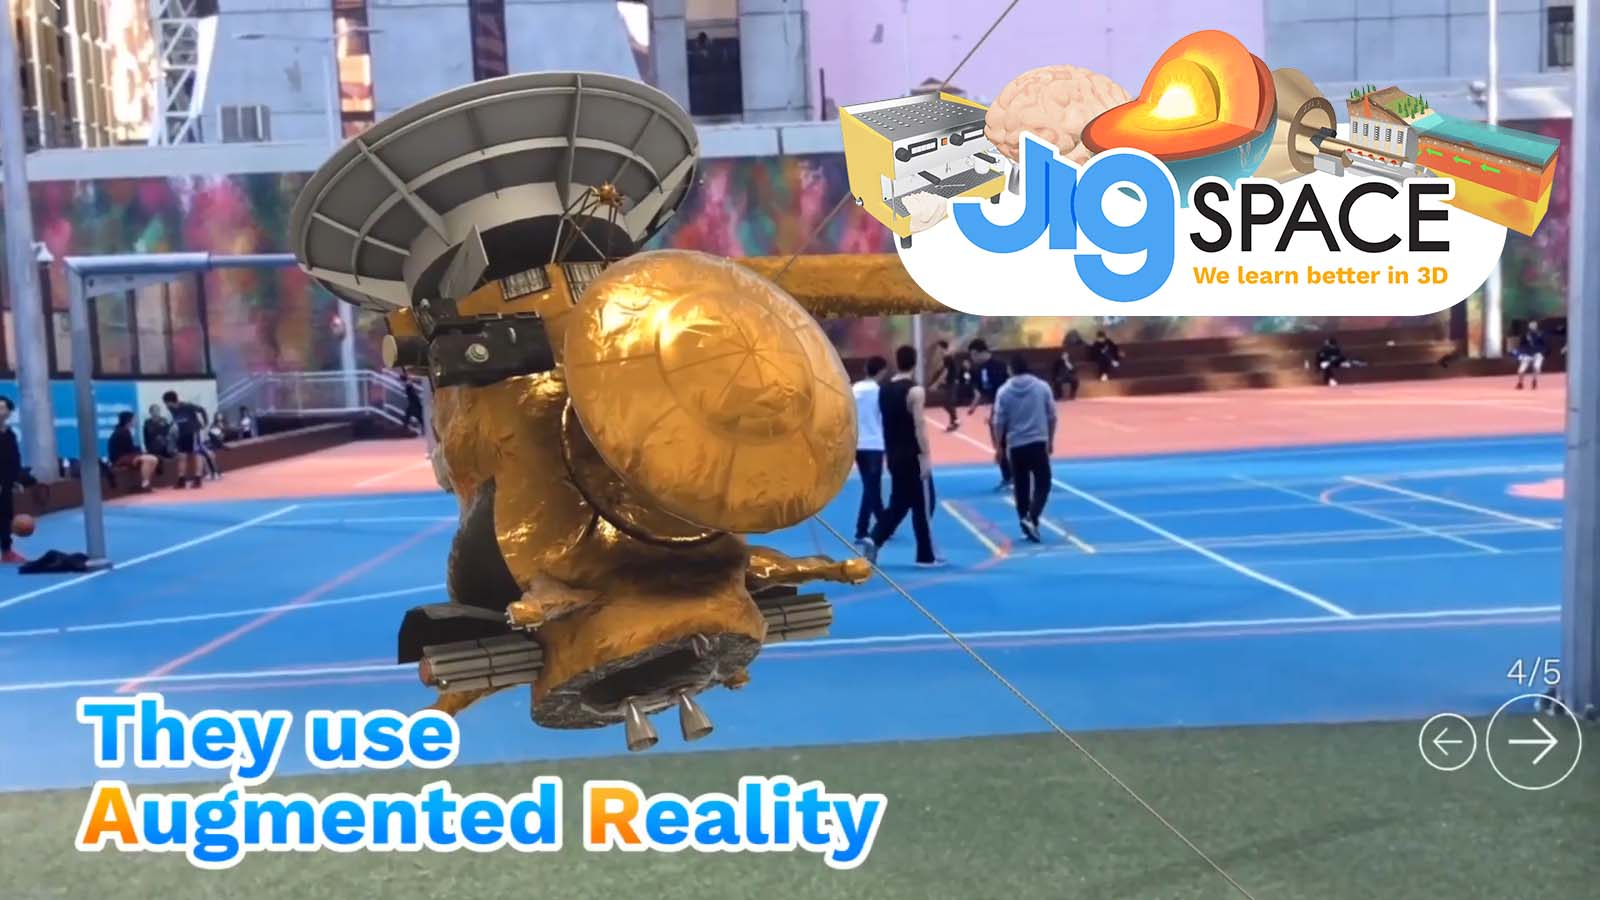 Ar Apps Jigspace Cover